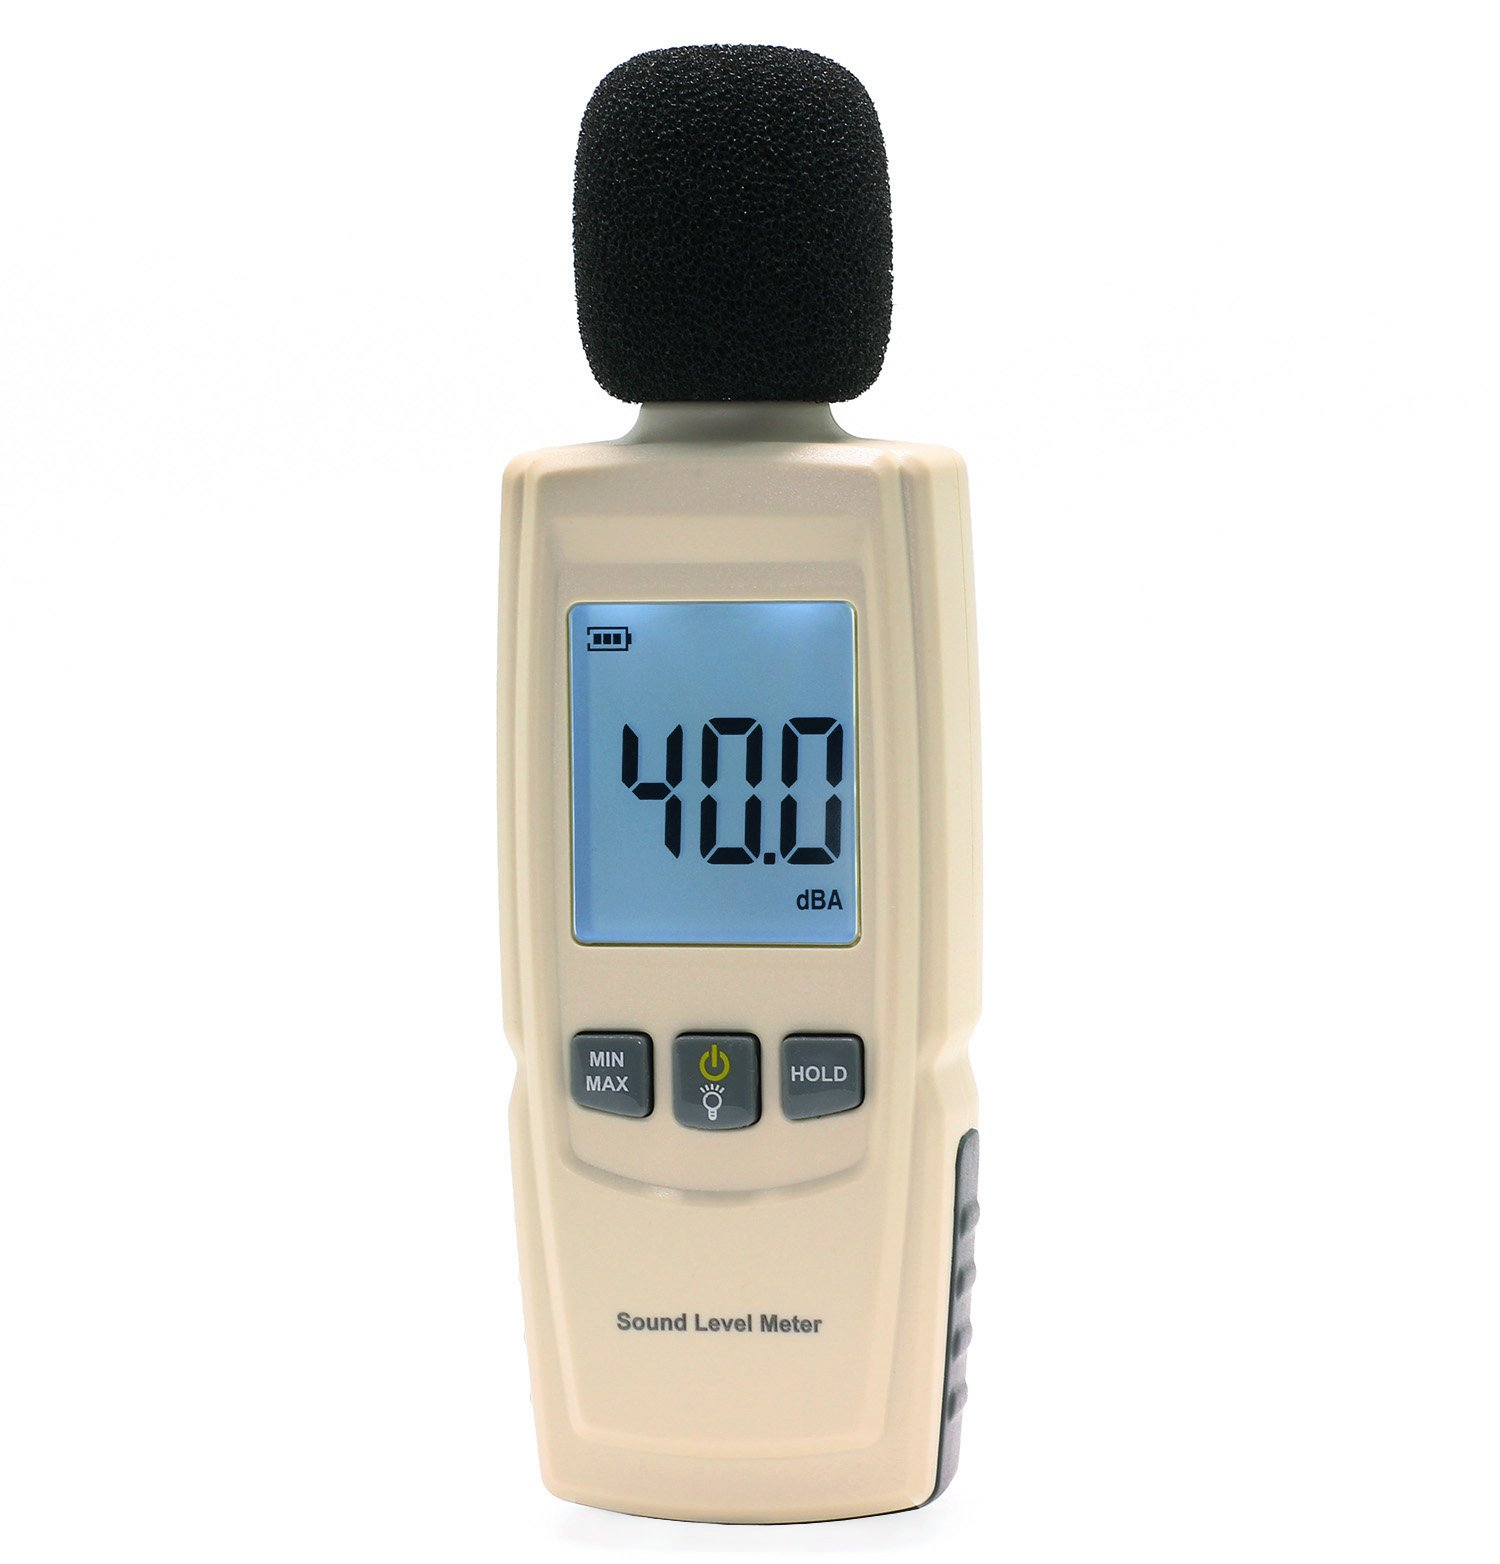 LotFancy Decibel Meter Reader, Digital Sound Level Tester, Measurement Range 30dBA -130dBA, Accuracy within +/-1.5dBA, Max/Min Hold Function, Large Backlit LCD Display, Batteries Included by LotFancy